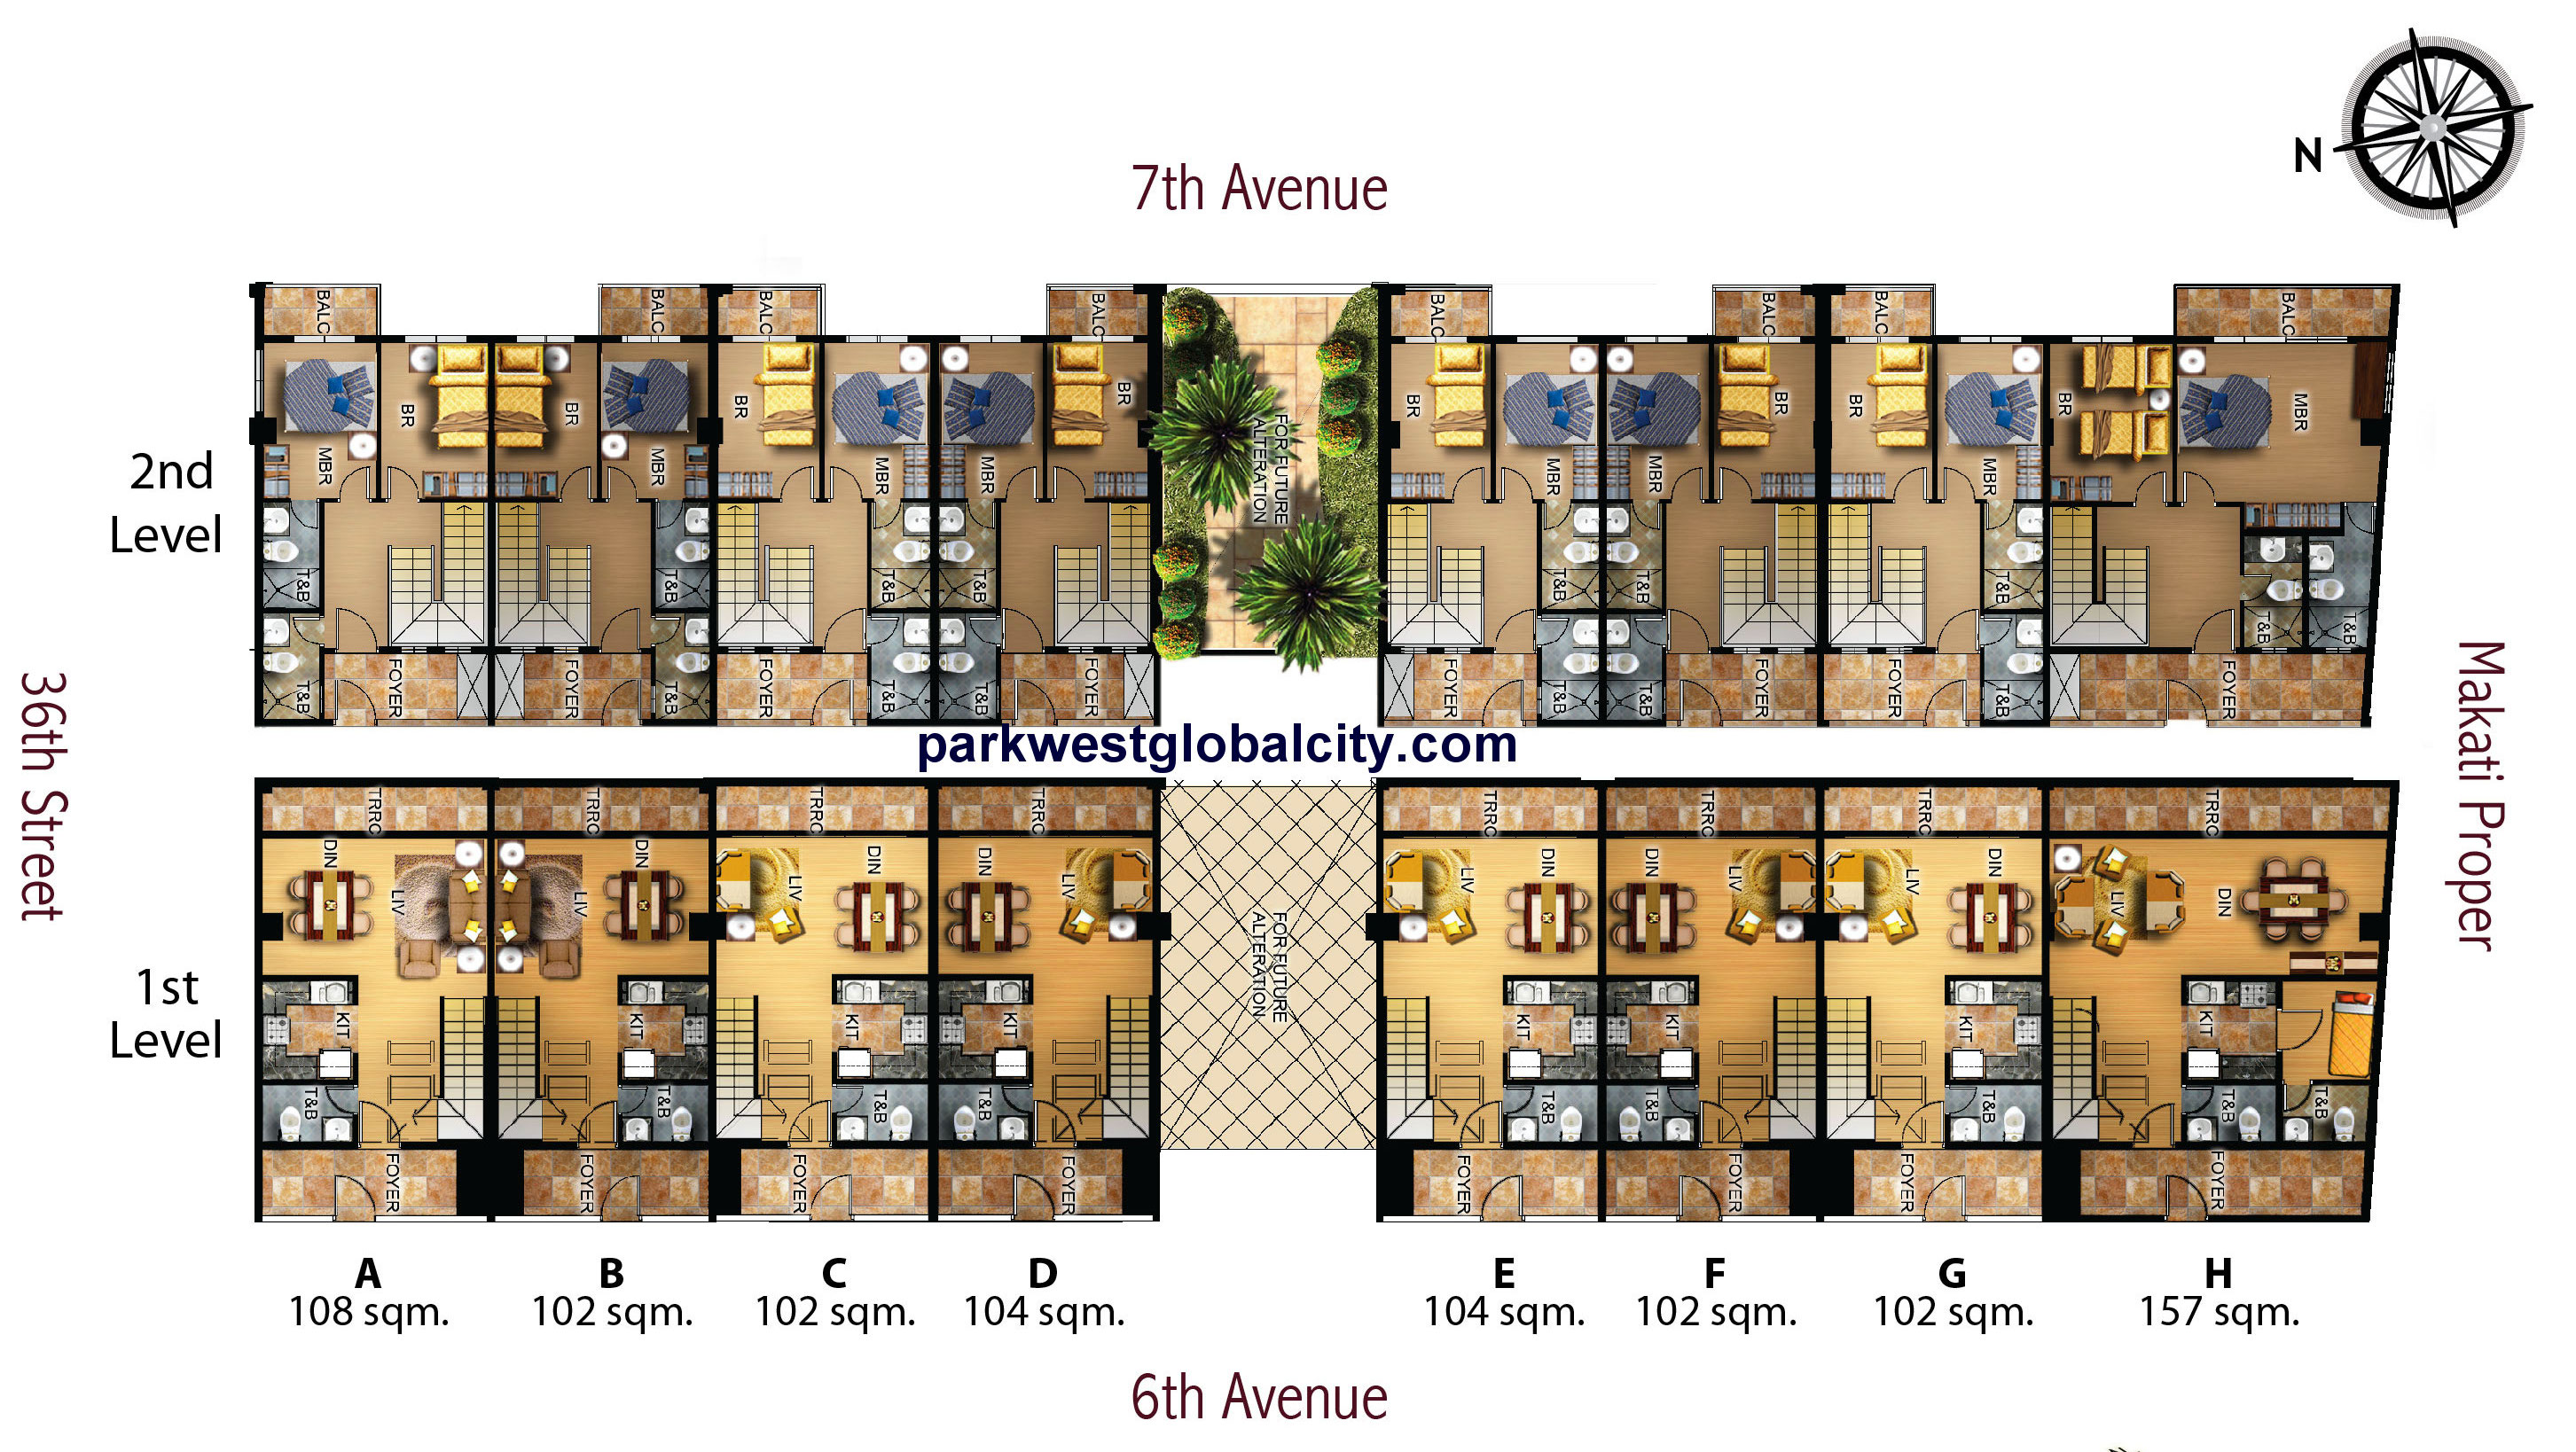 floor plans park west global city. Black Bedroom Furniture Sets. Home Design Ideas